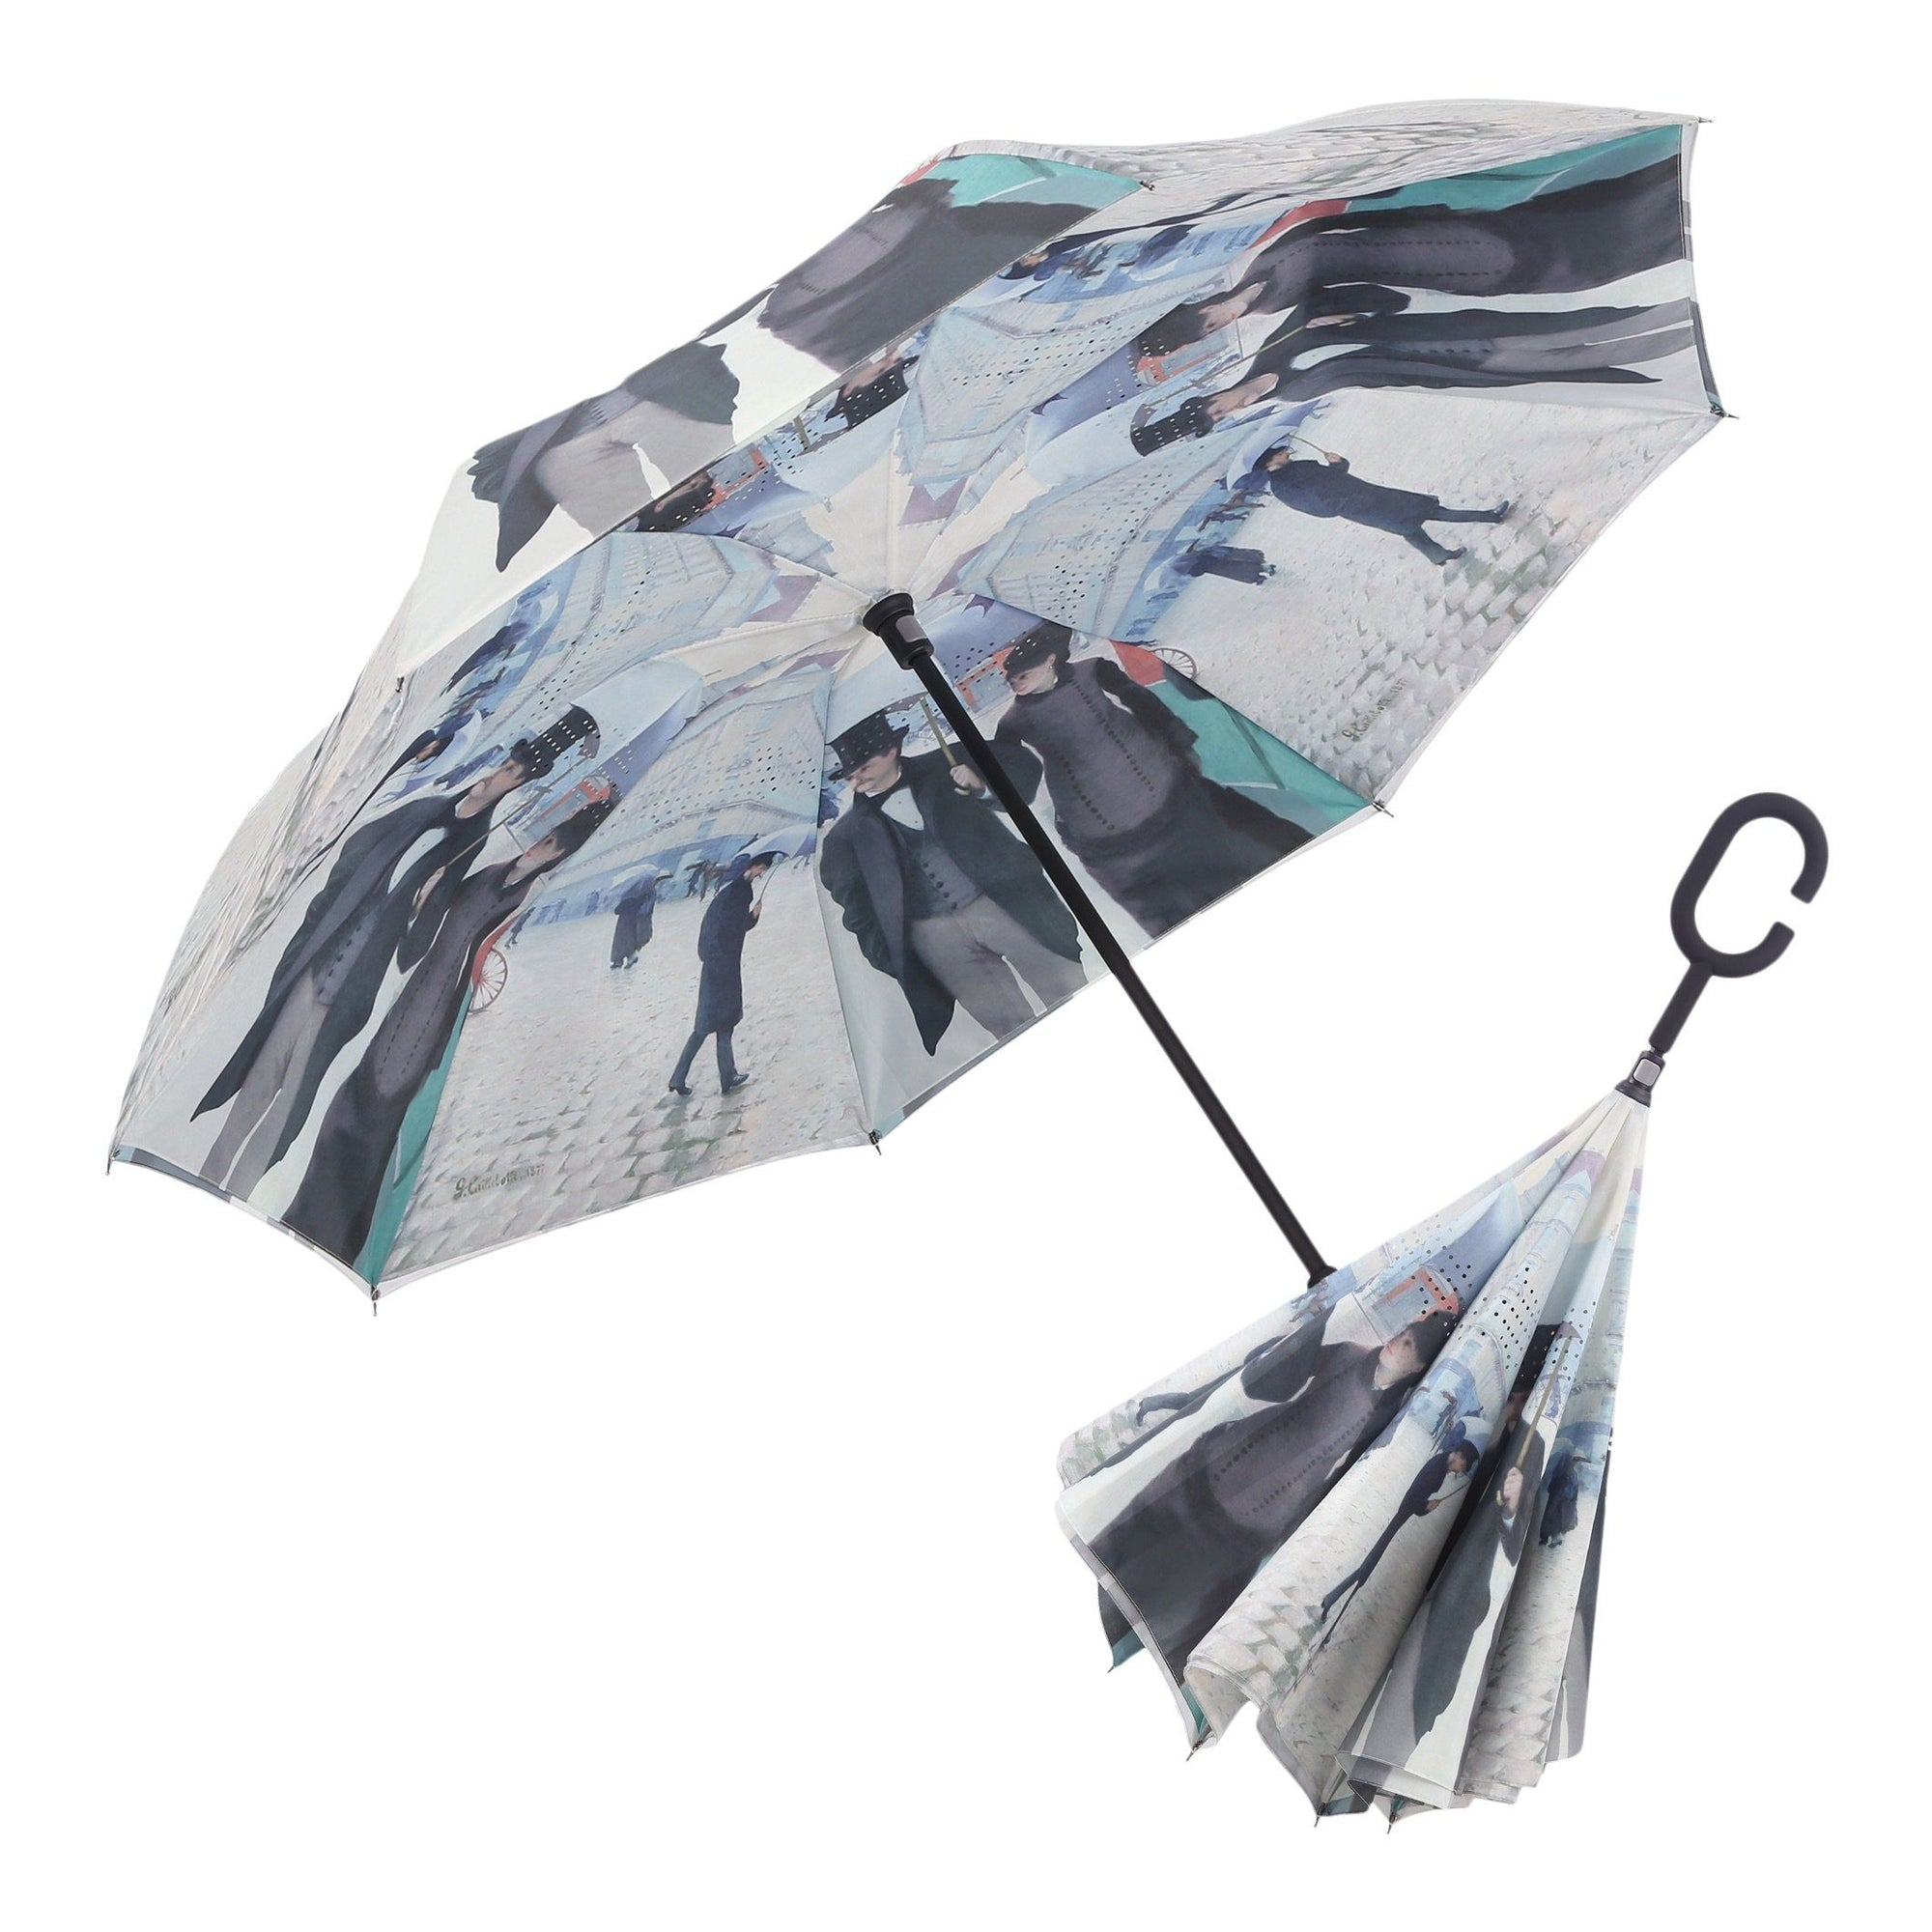 Image of a RainCaper Caillebotte Paris Street inverted umbrella shown both open and closed